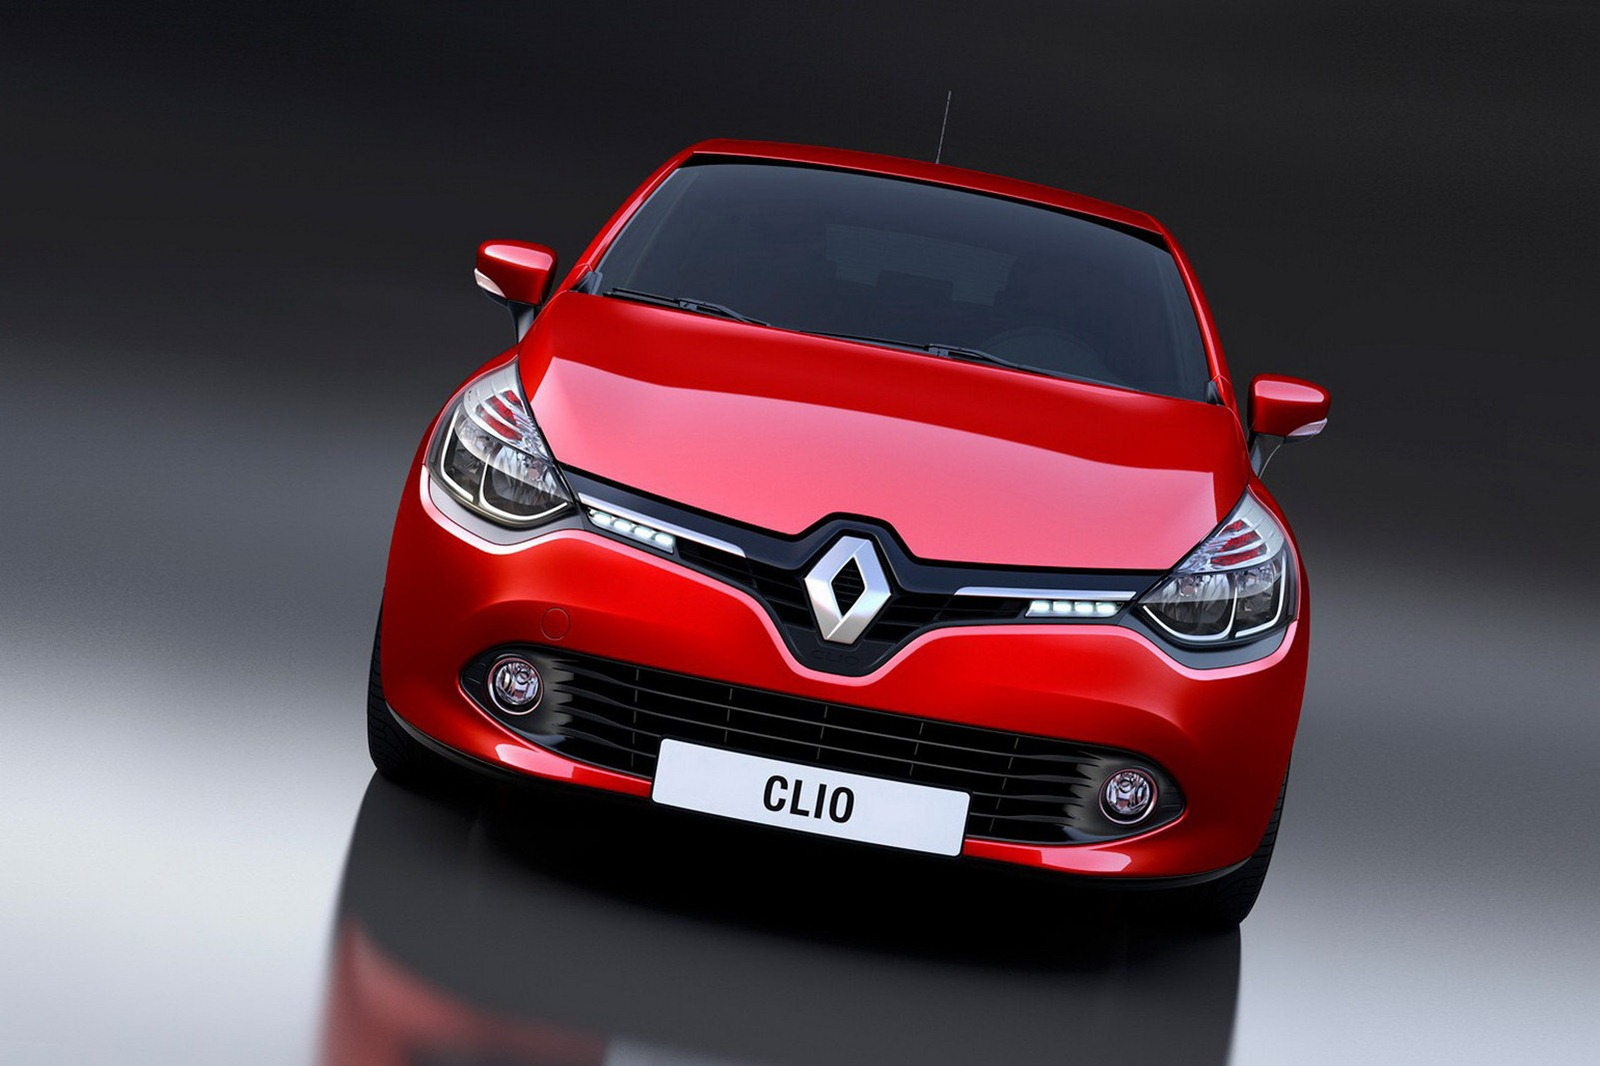 Renault Clio Mk4 Front Grill Bumper Grill Car Styling Bumpers Car Tuning Styling Parts